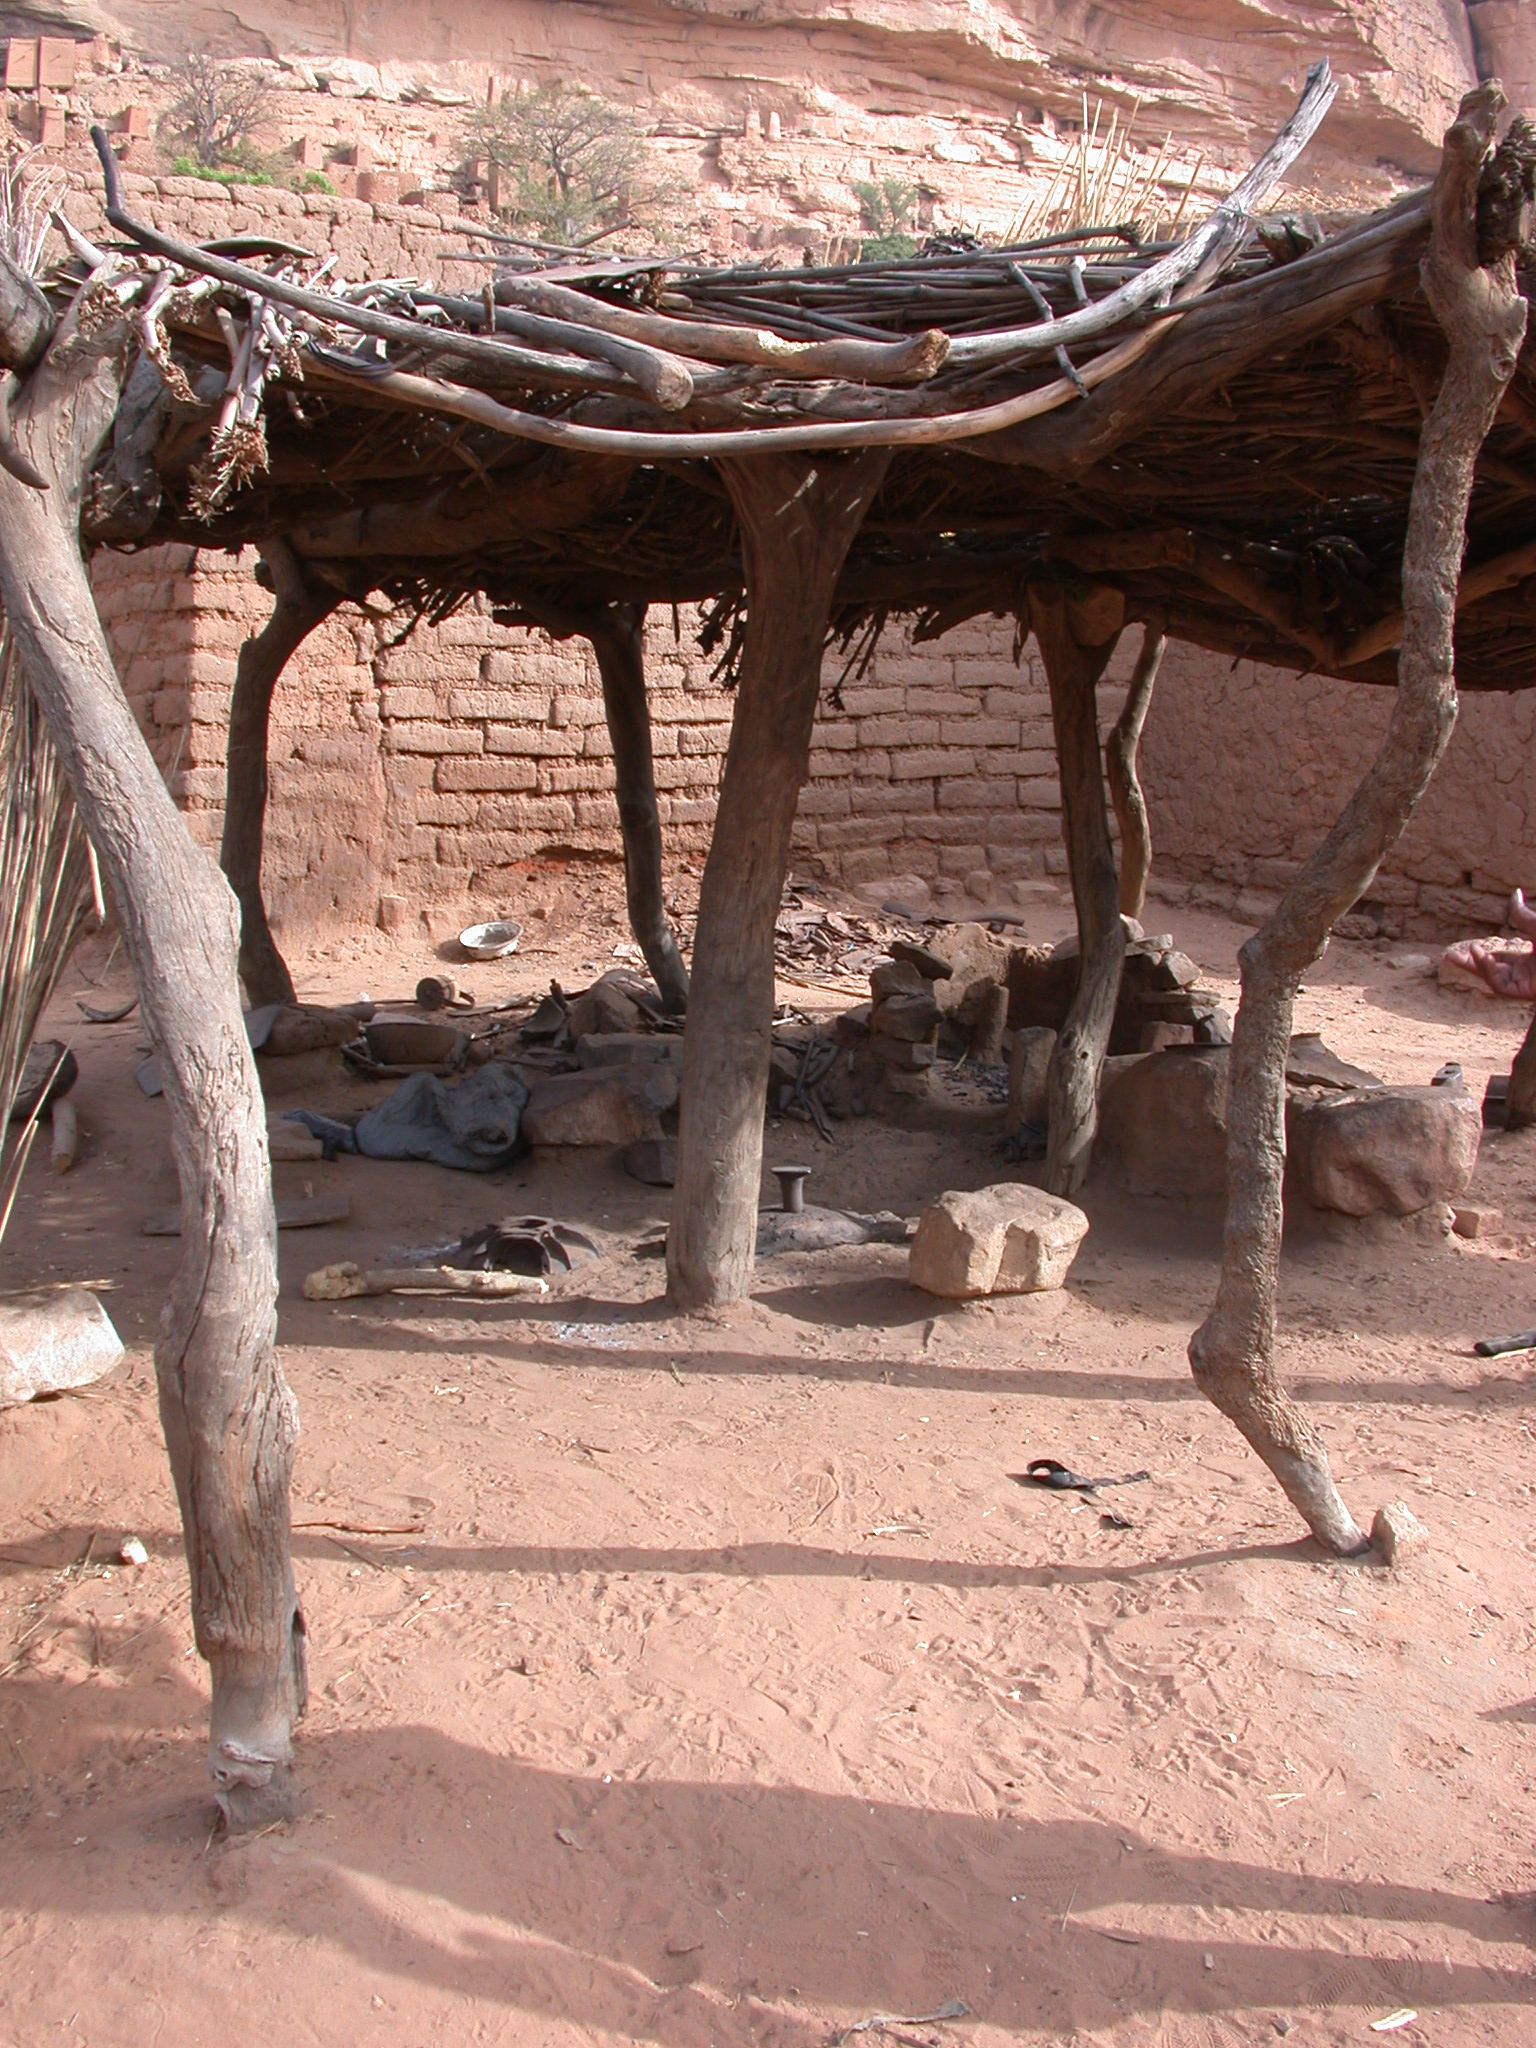 Blacksmith Forge, Tellem Village, Dogon Country, Mali